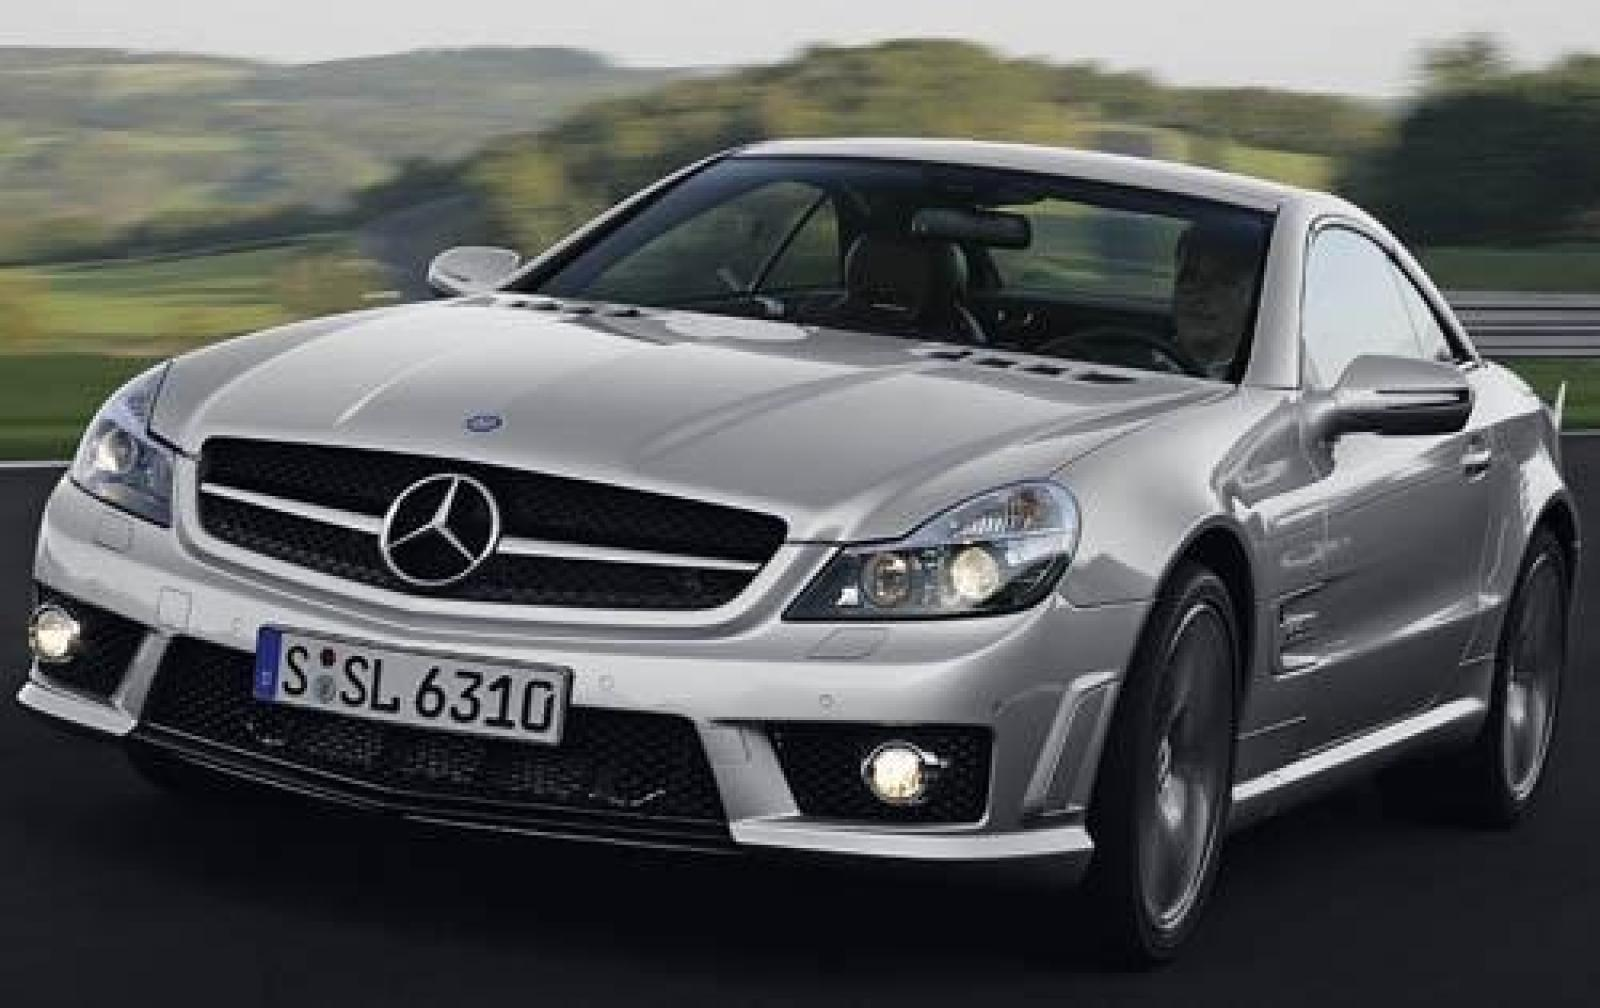 2011 mercedes benz sl class information and photos zombiedrive. Black Bedroom Furniture Sets. Home Design Ideas